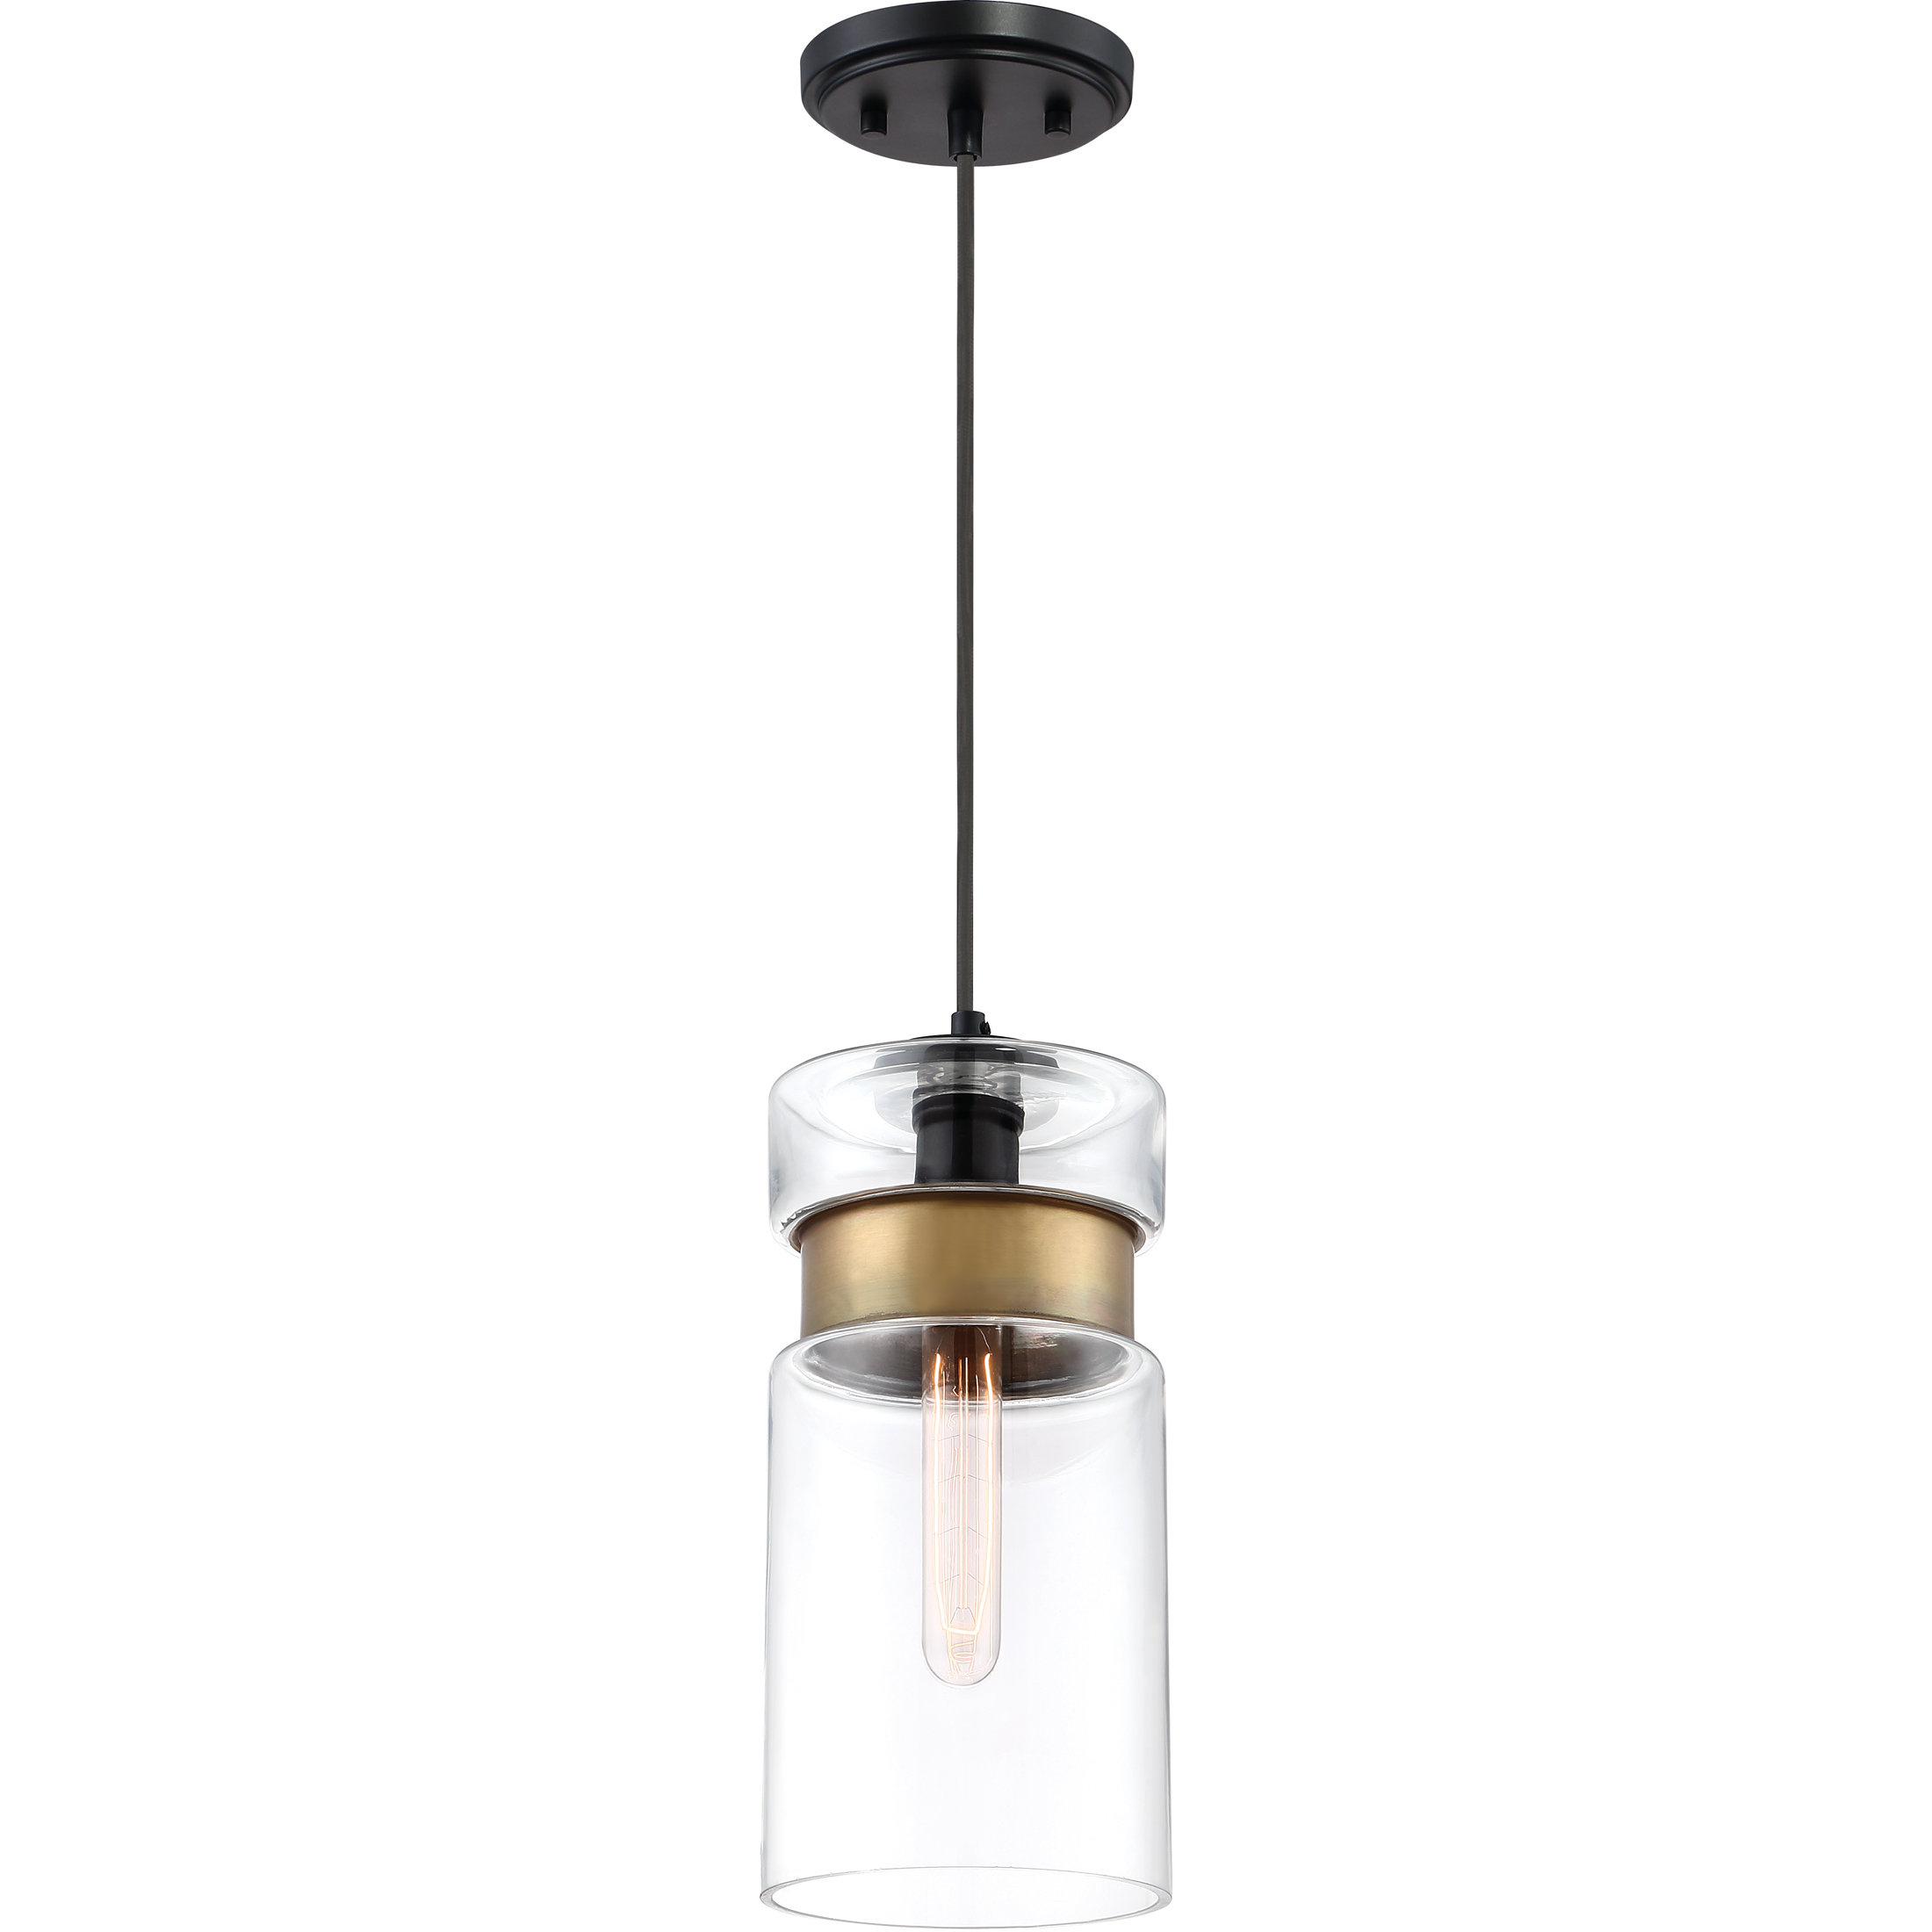 Sue 1 Light Single Jar Pendants With Latest Nagel 1 Light Cylinder Pendant (View 19 of 25)